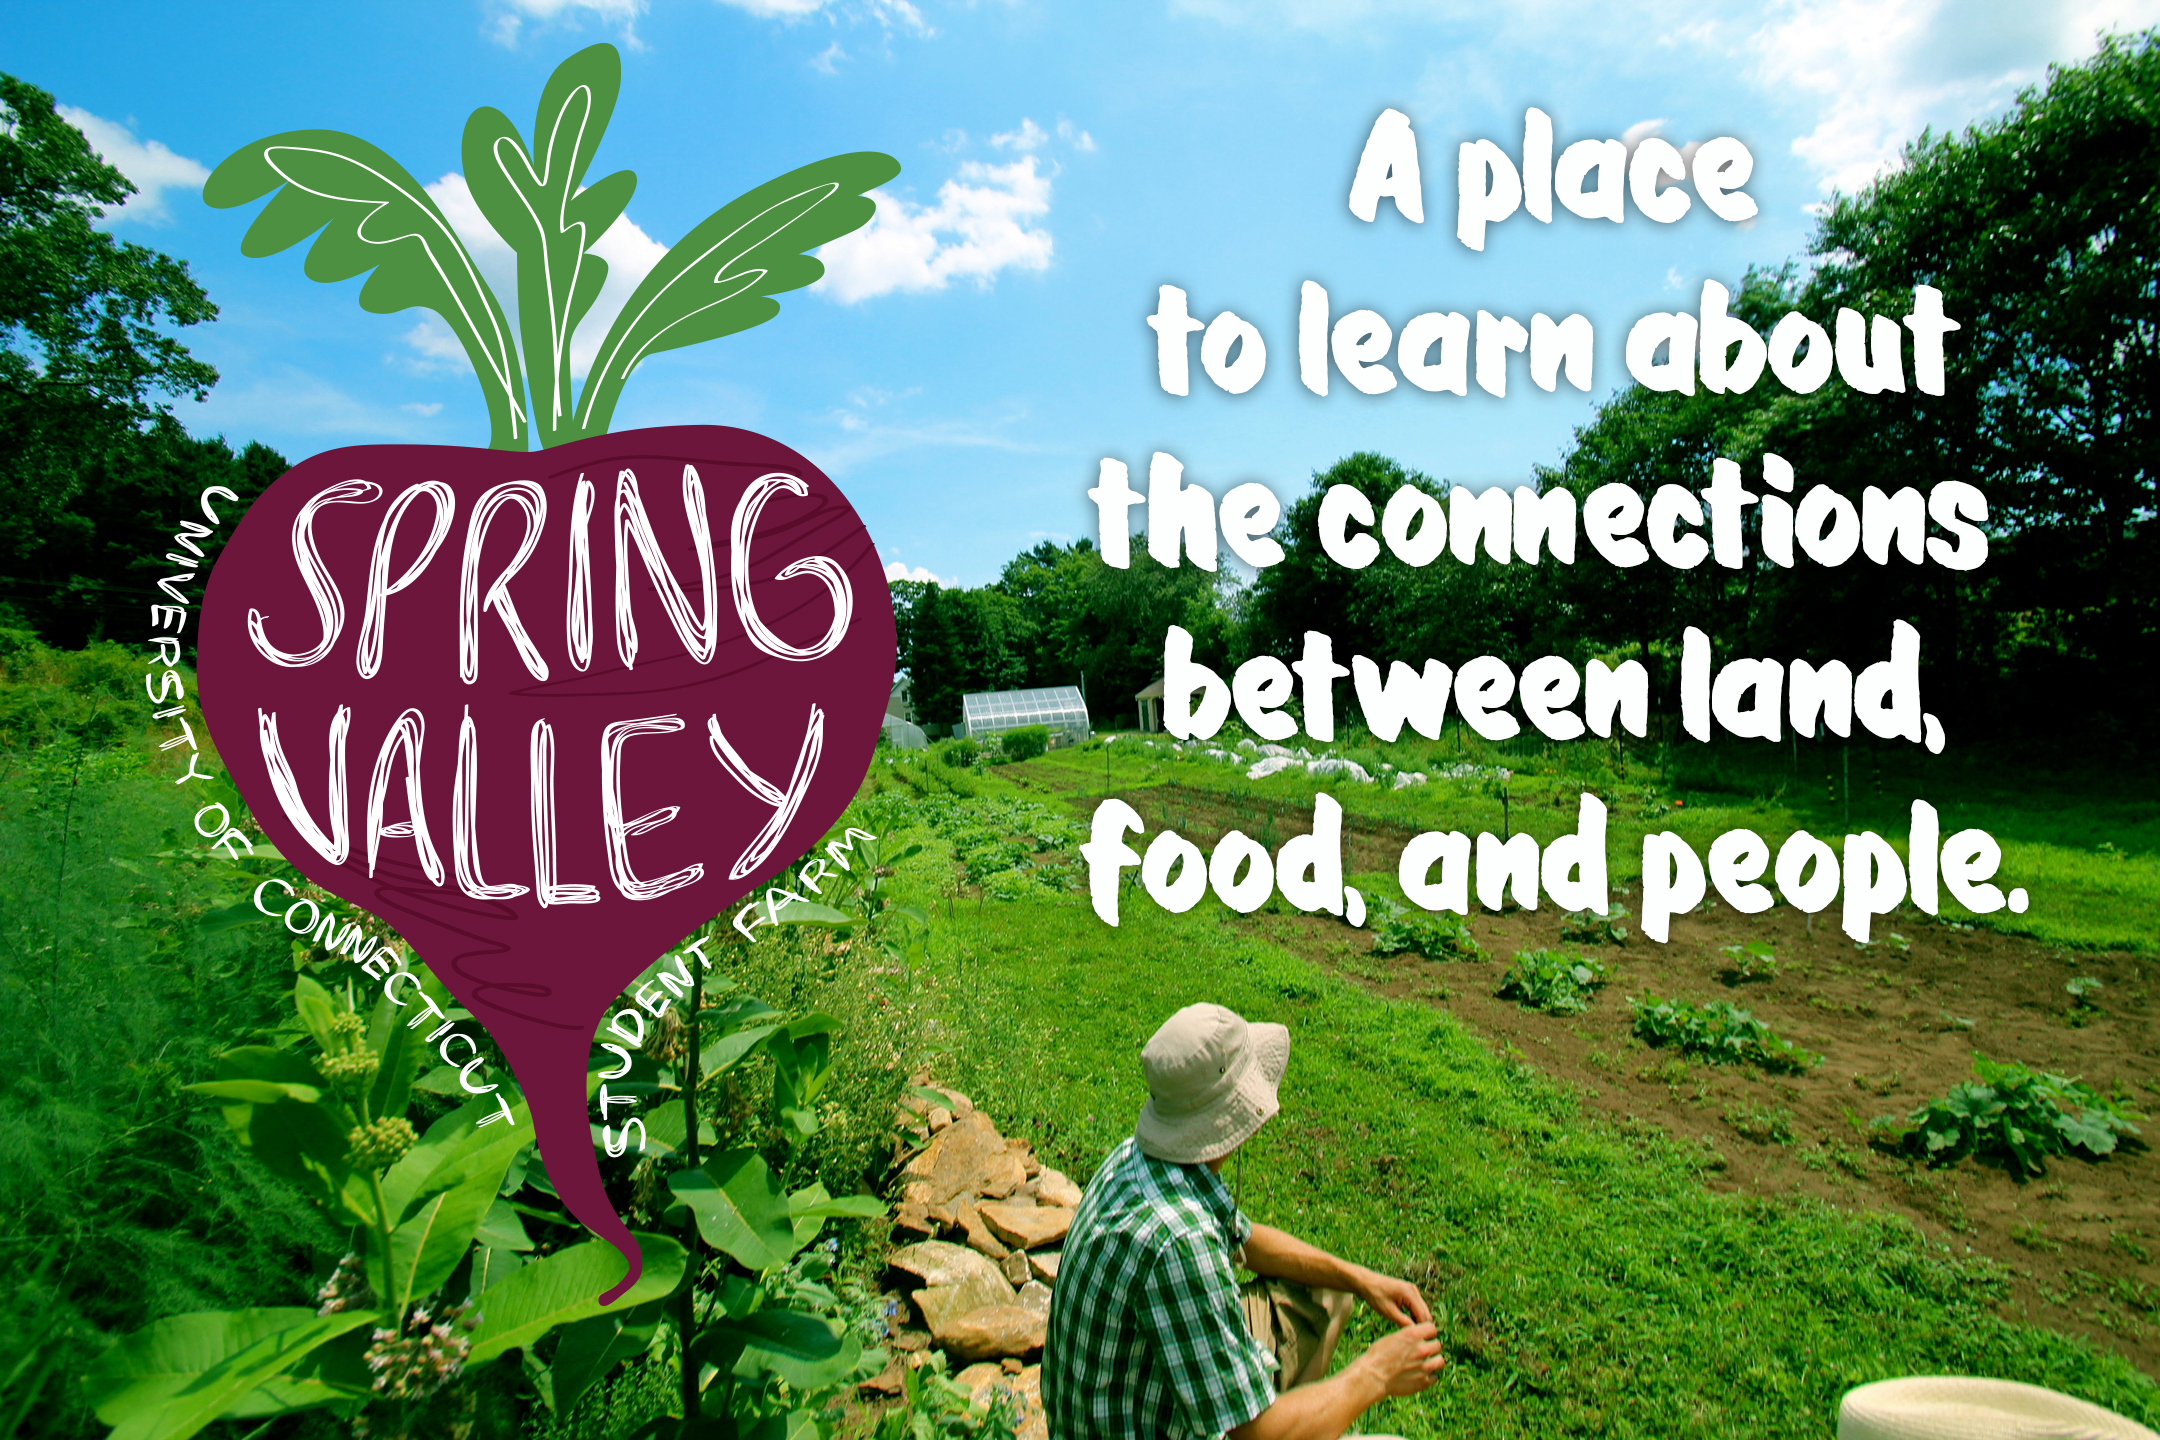 Spring Valley Student Farm